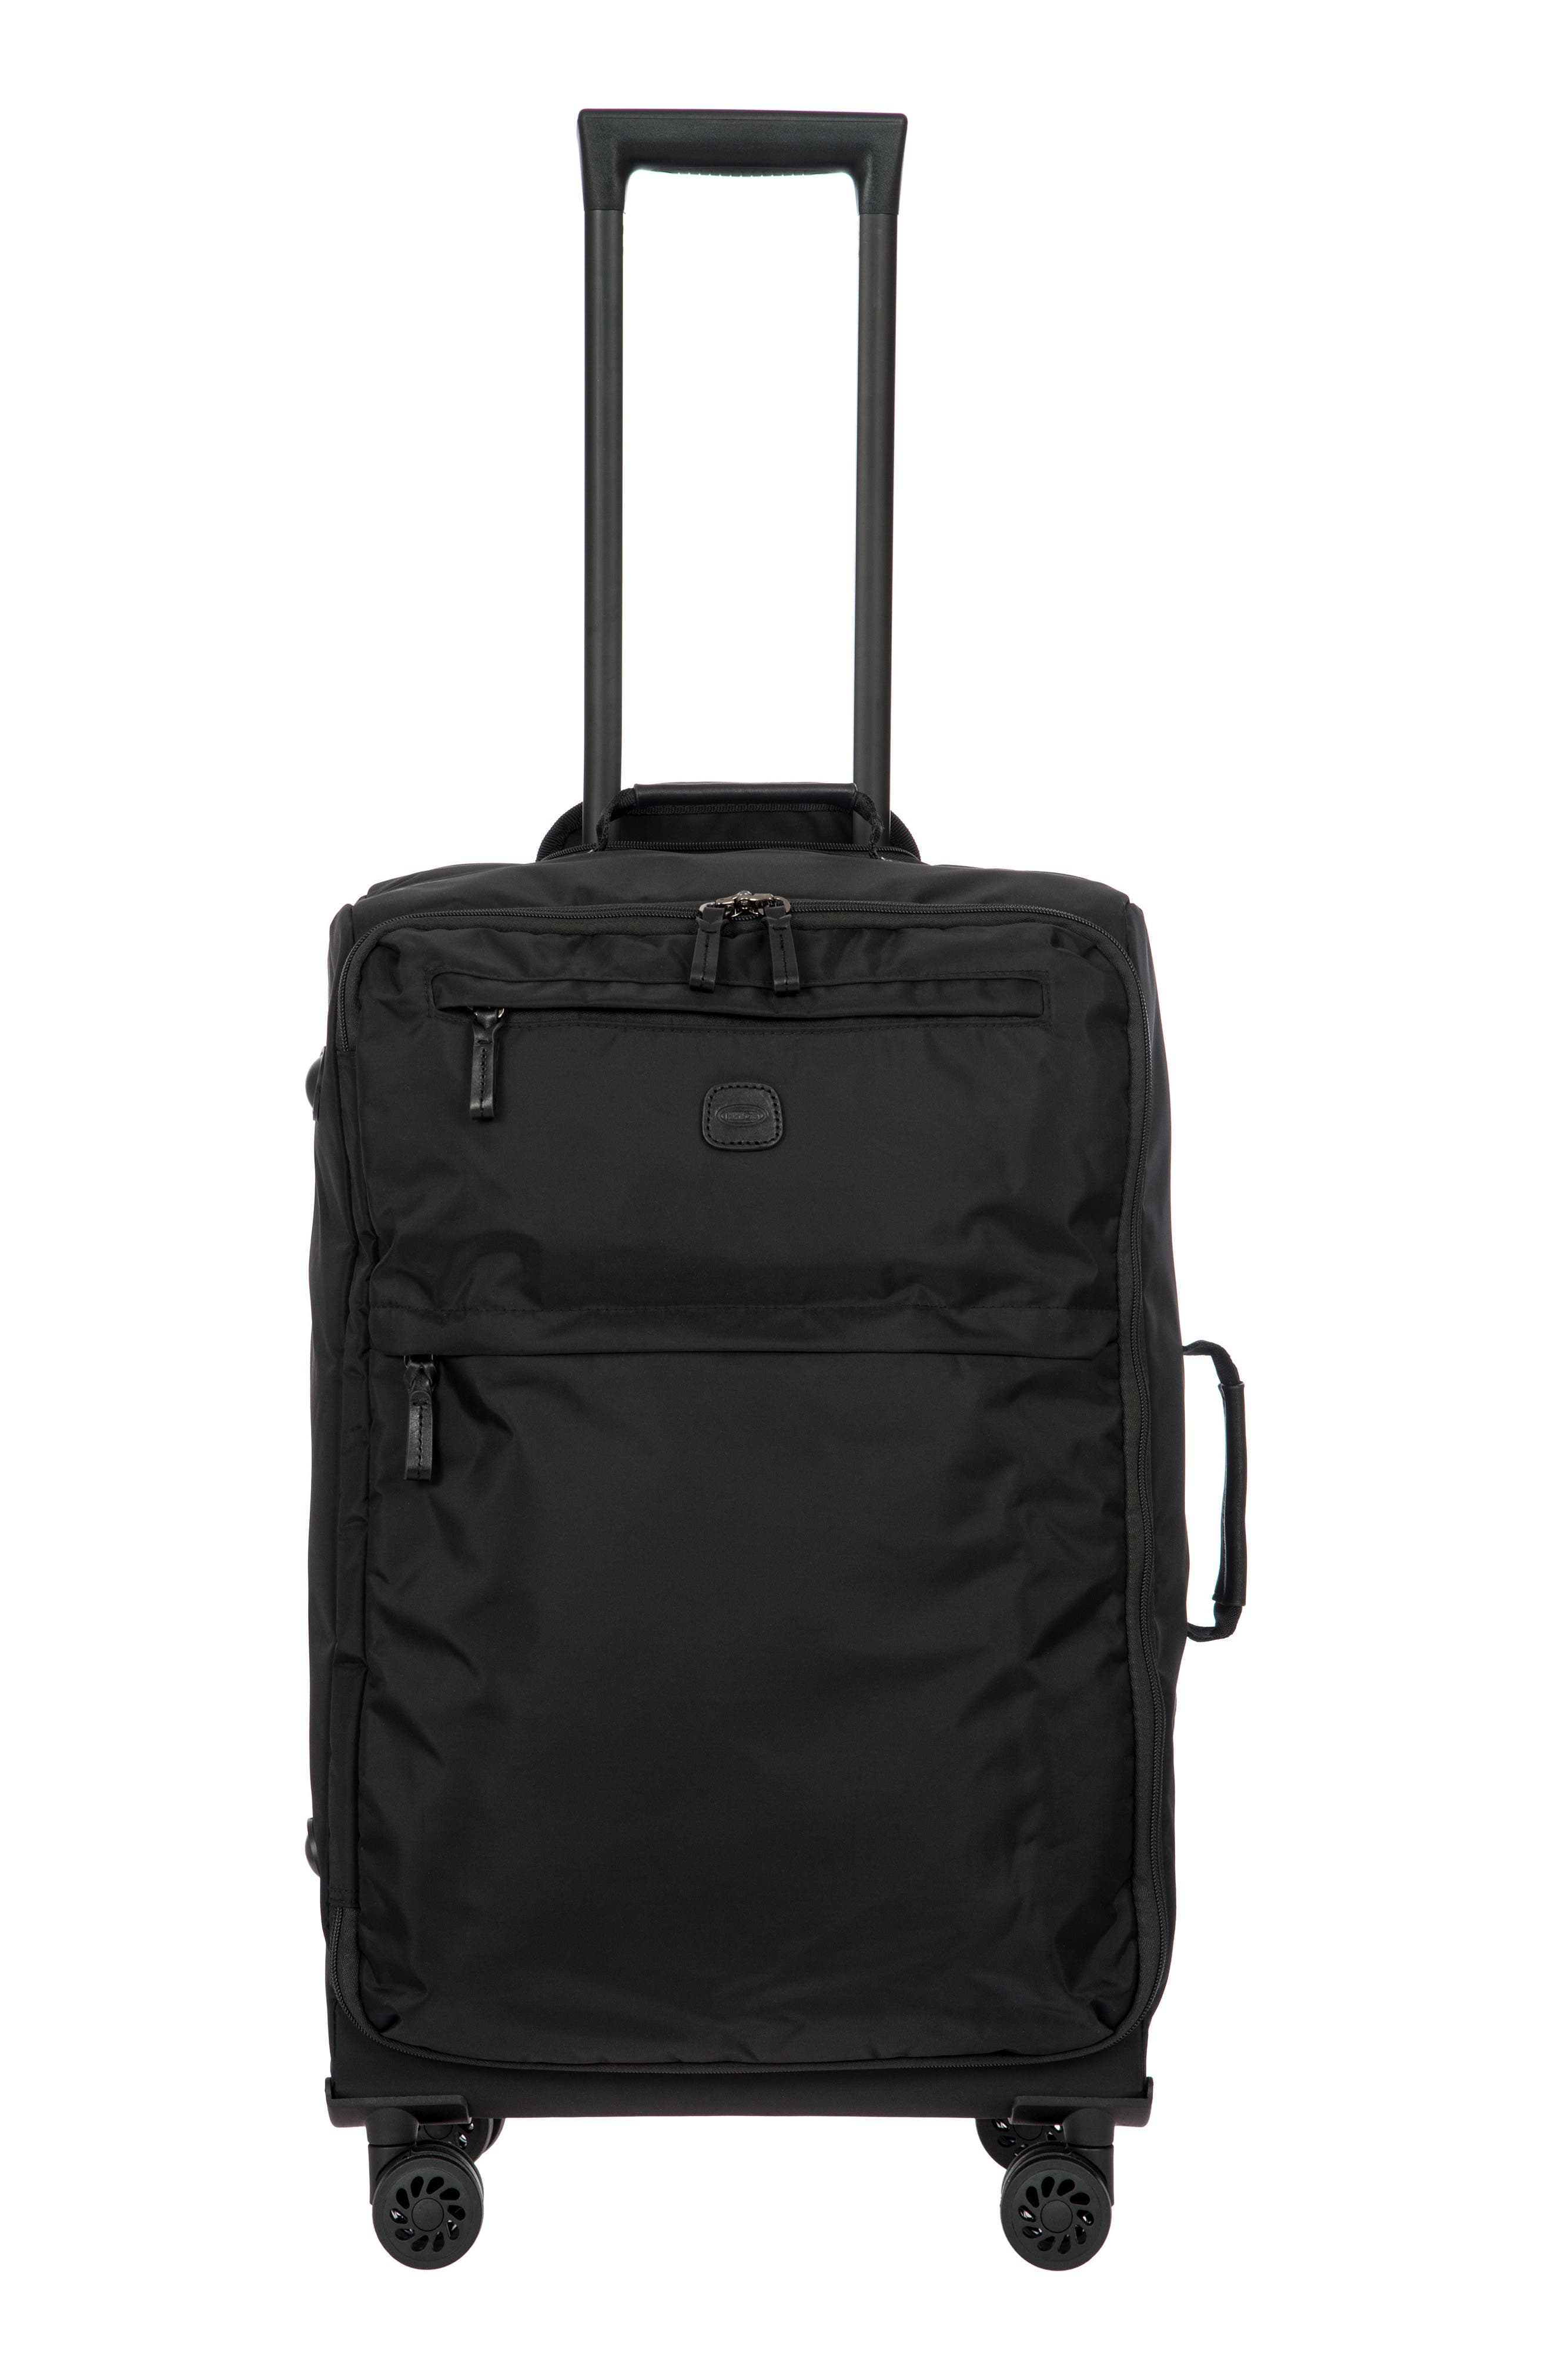 X-Bag 25-Inch Spinner Suitcase,                             Main thumbnail 1, color,                             BLACK/ BLACK